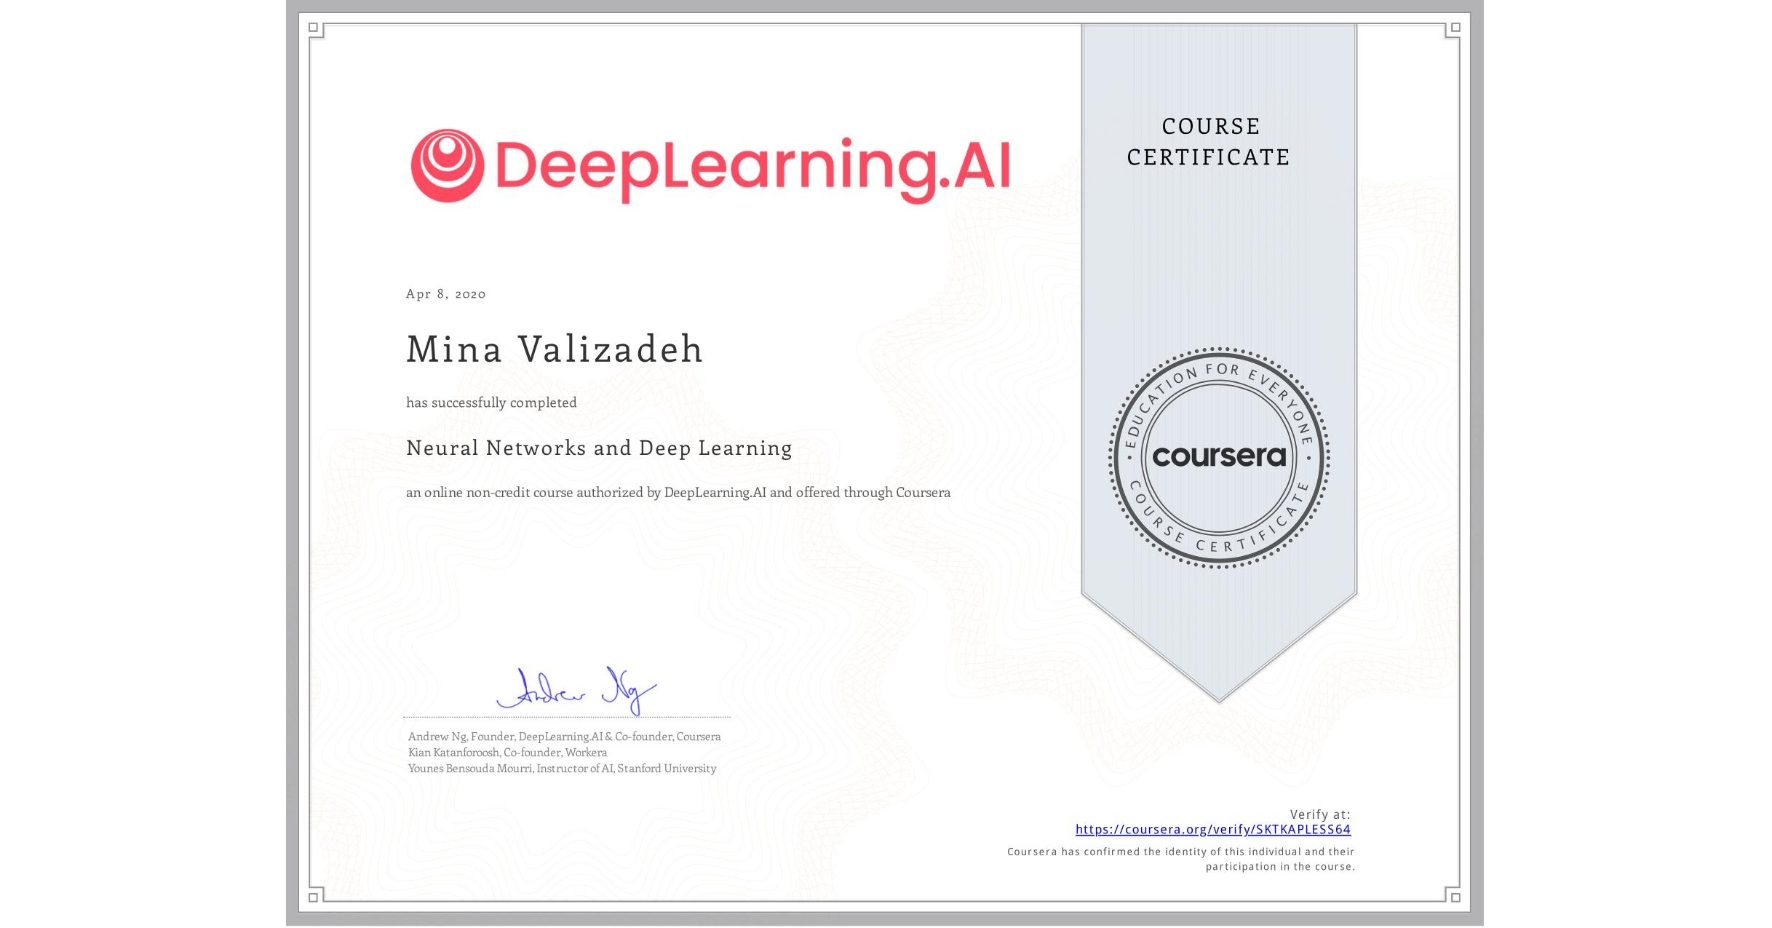 View certificate for Mina Valizadeh, Neural Networks and Deep Learning, an online non-credit course authorized by DeepLearning.AI and offered through Coursera